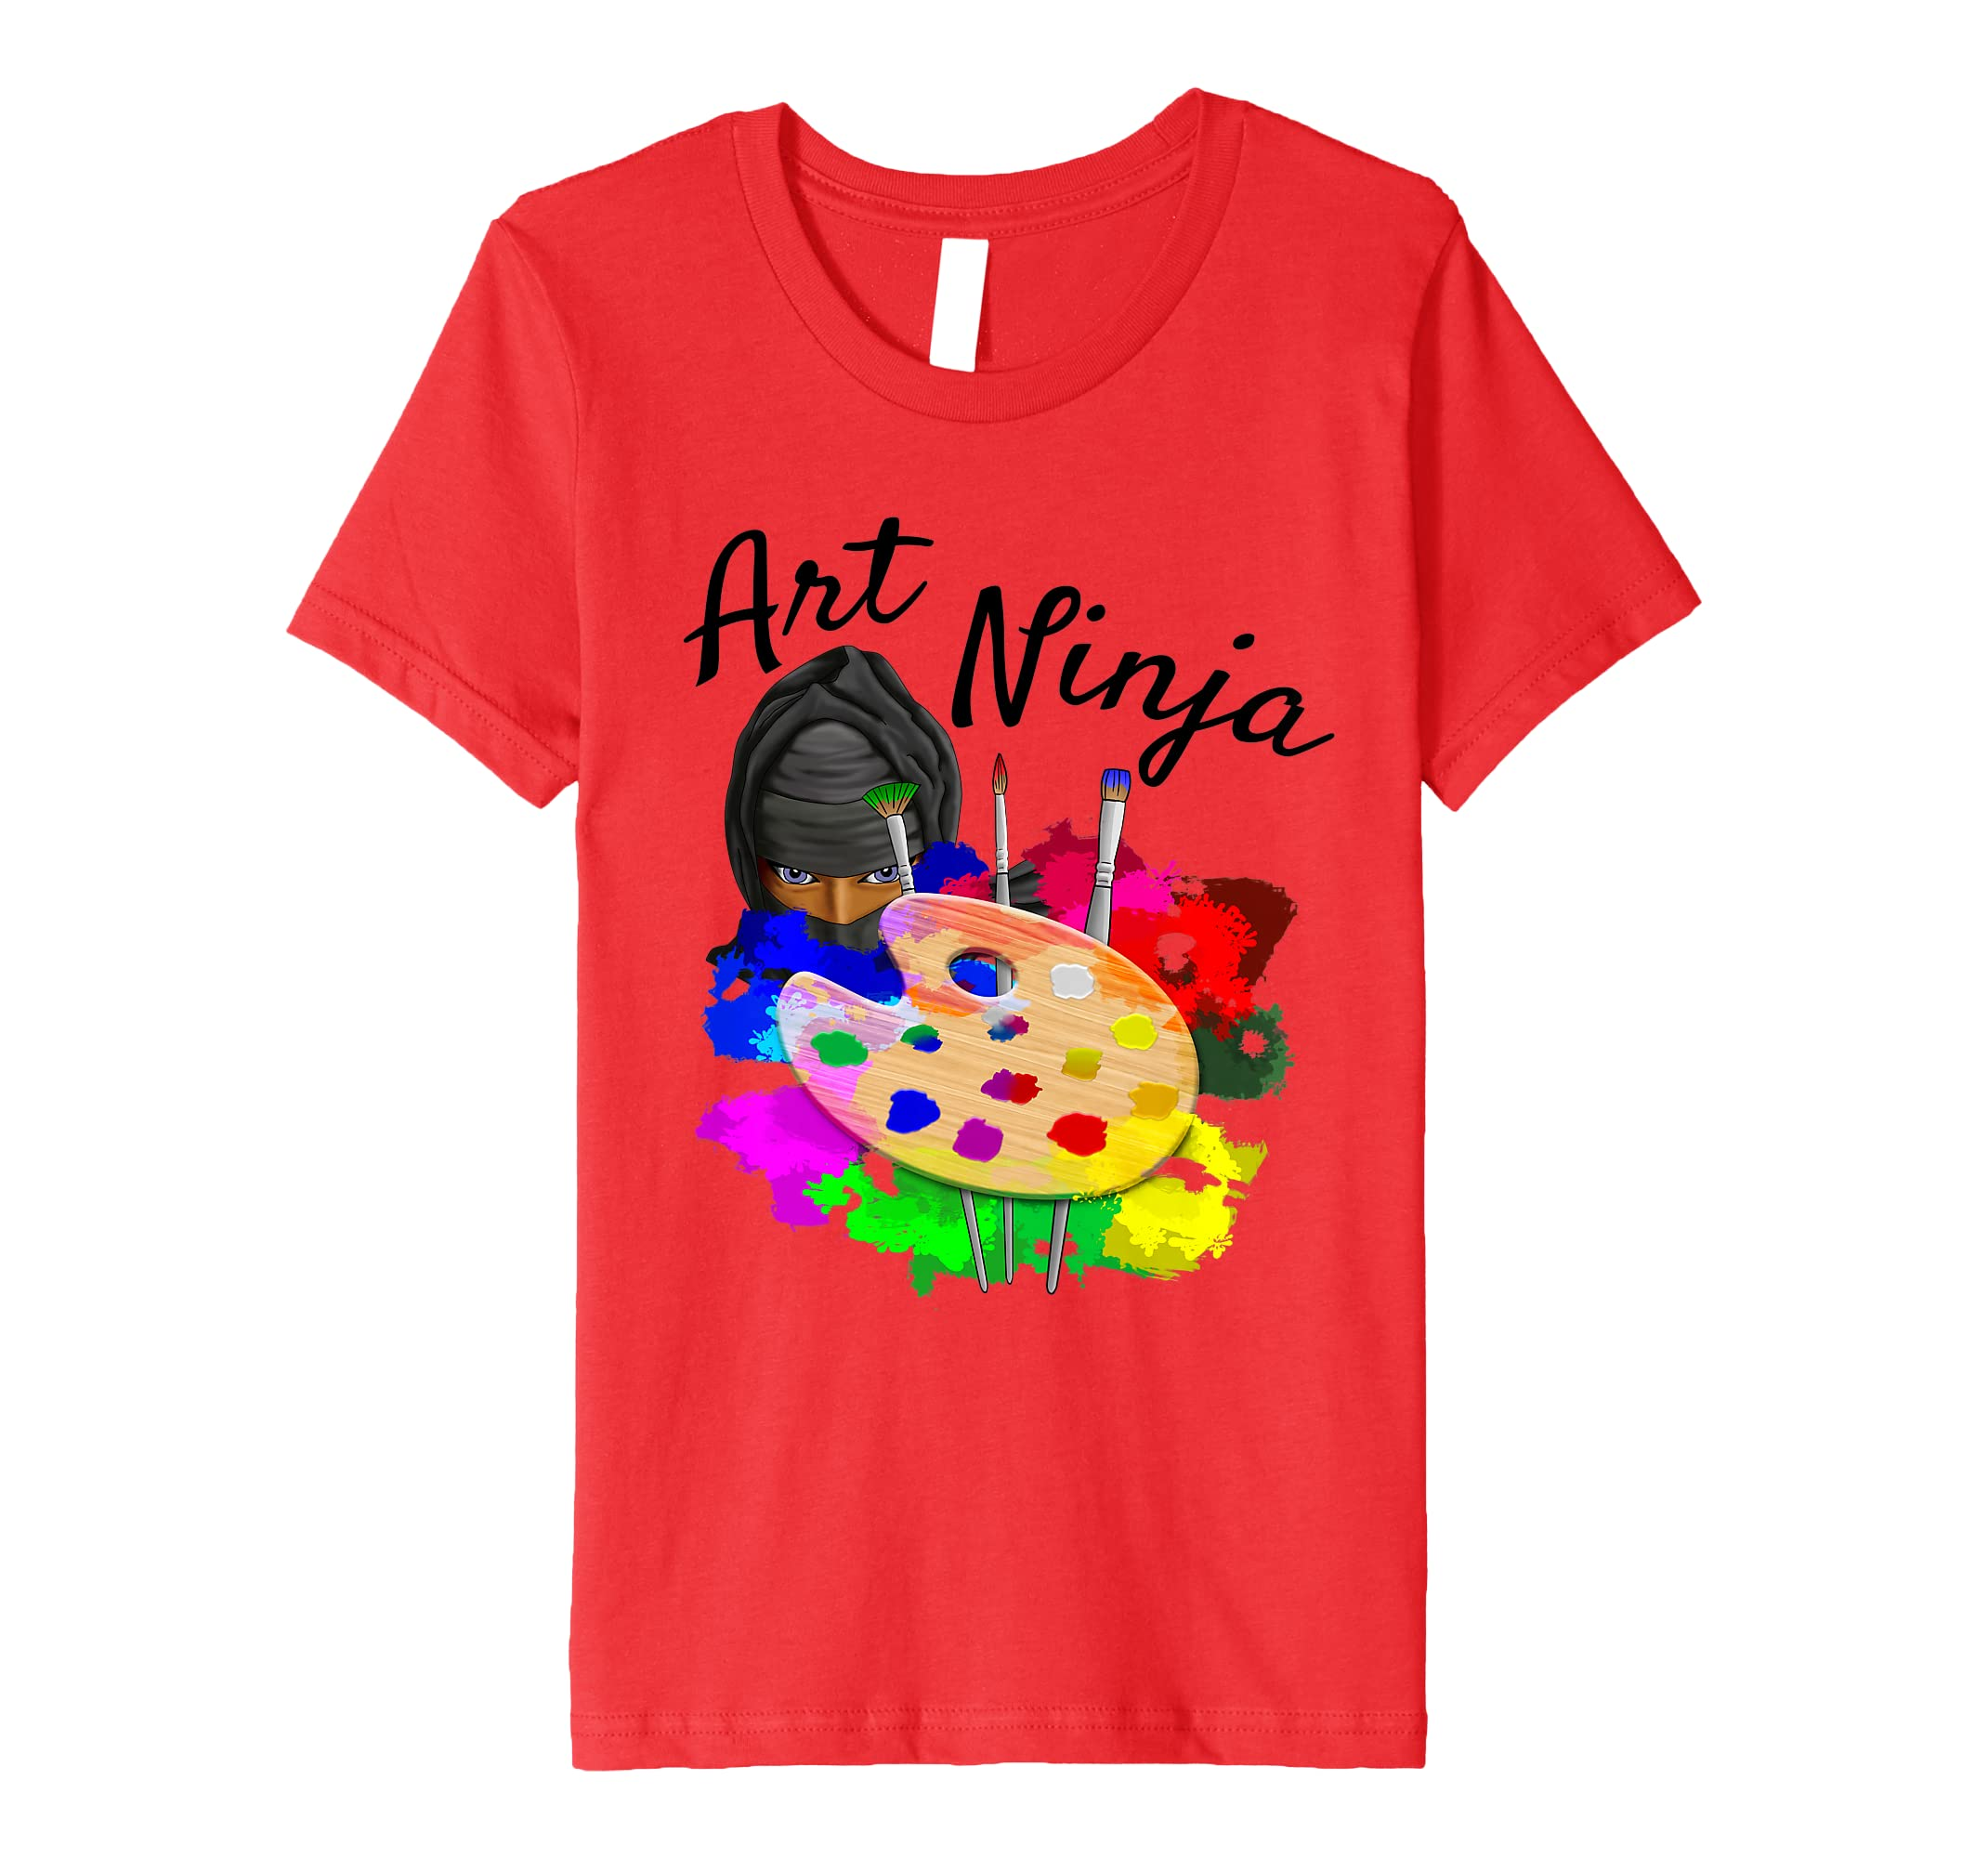 Amazon.com: Art Ninja Artist T-Shirt: Clothing